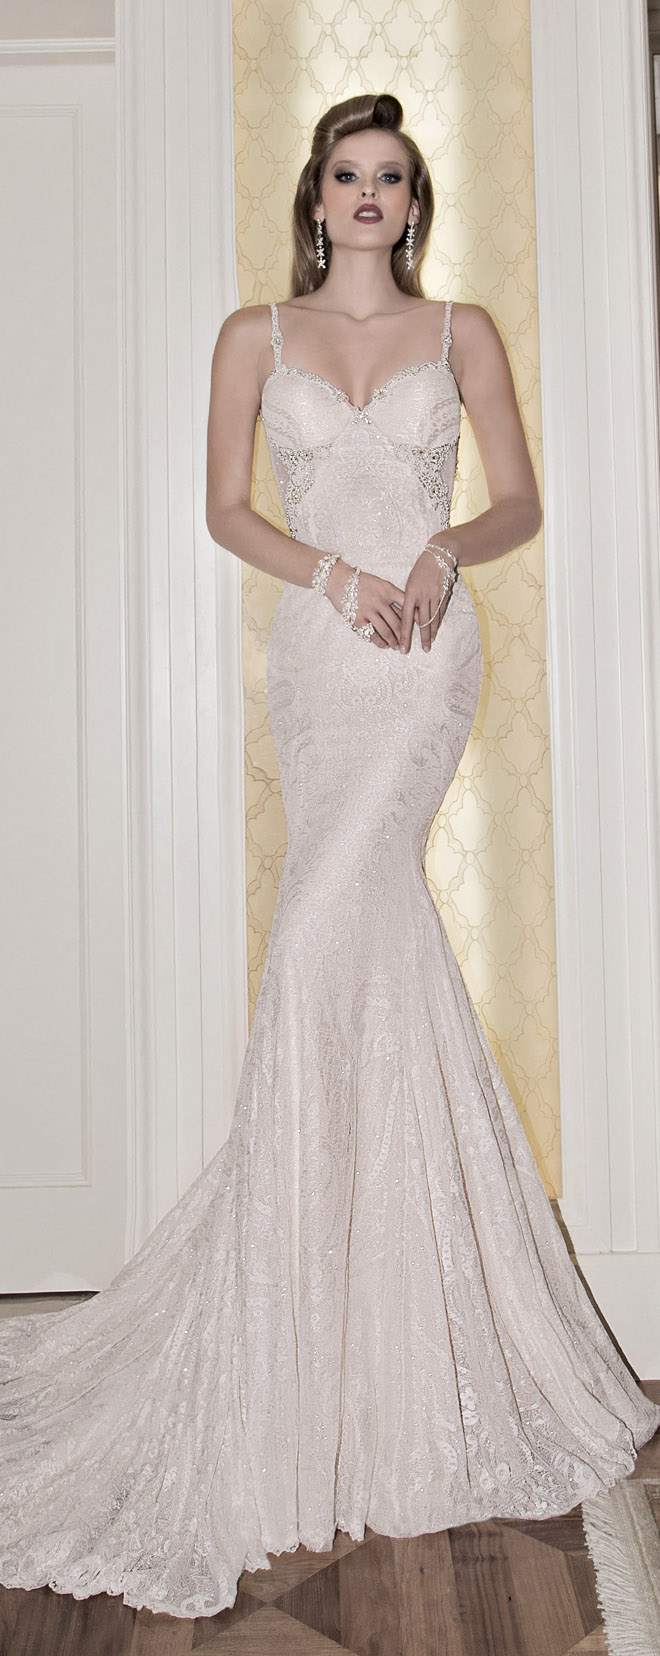 Galia-Lahav-Tales-of-the-Jazz-Age-nupcial-collection-Norma